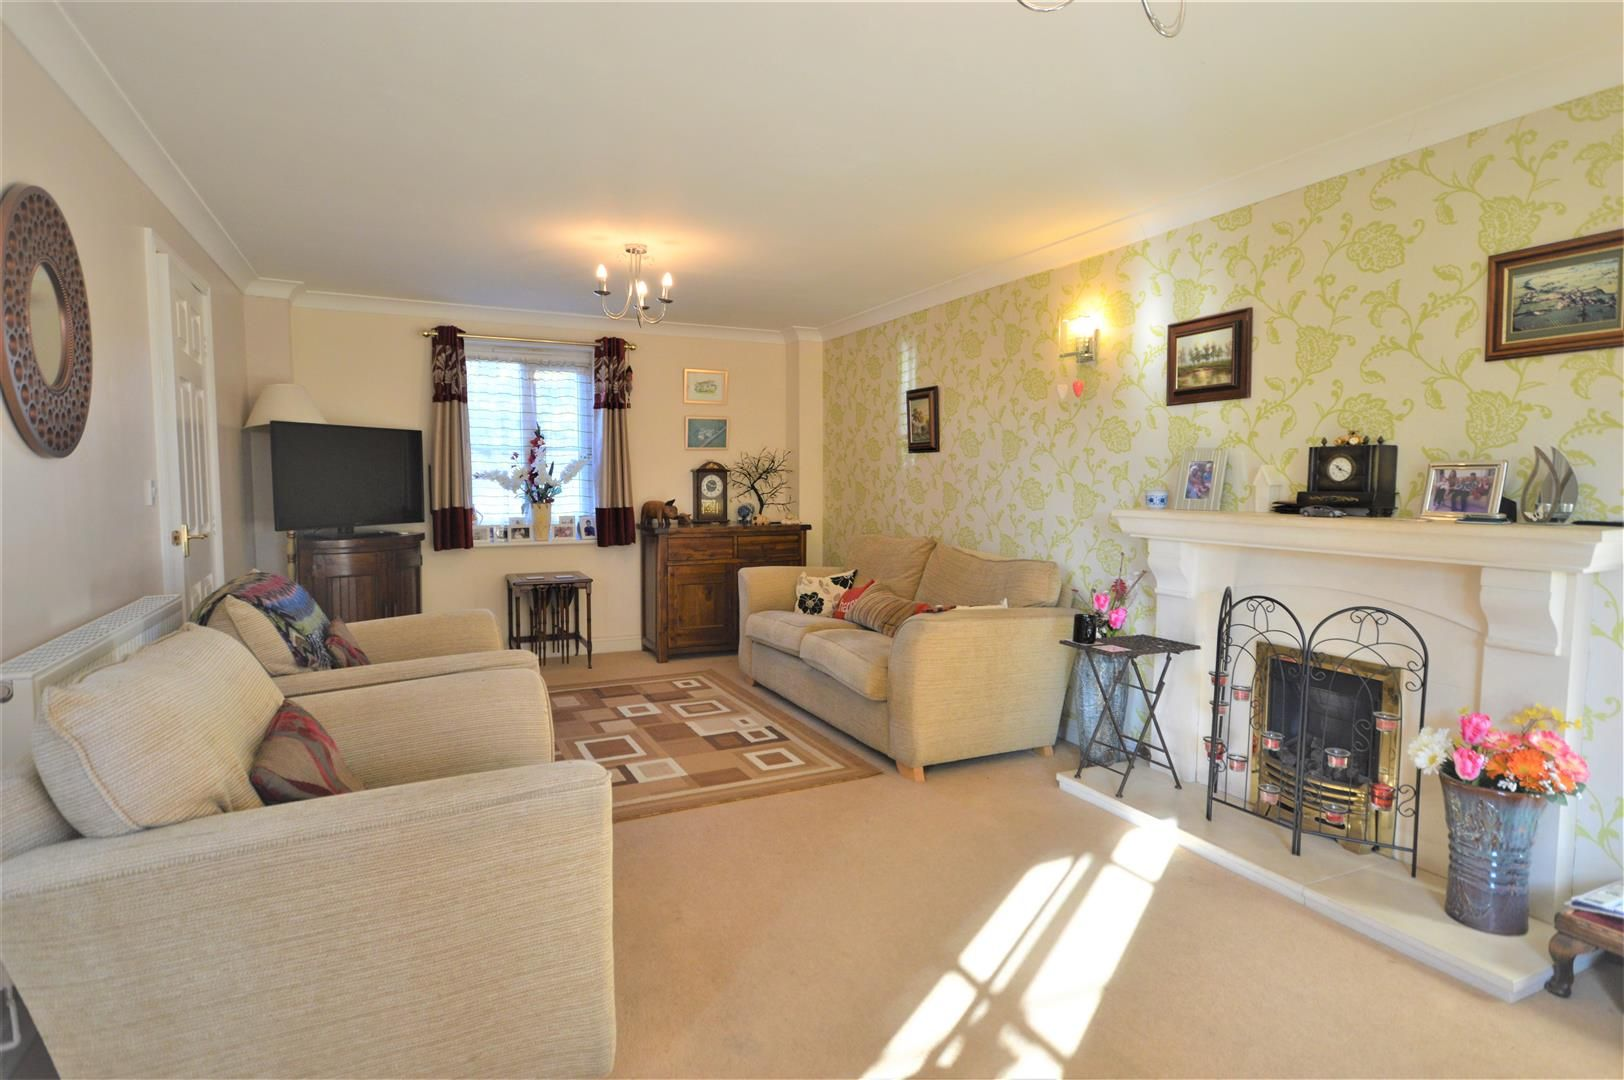 4 bed semi-detached for sale in Leominster  - Property Image 3